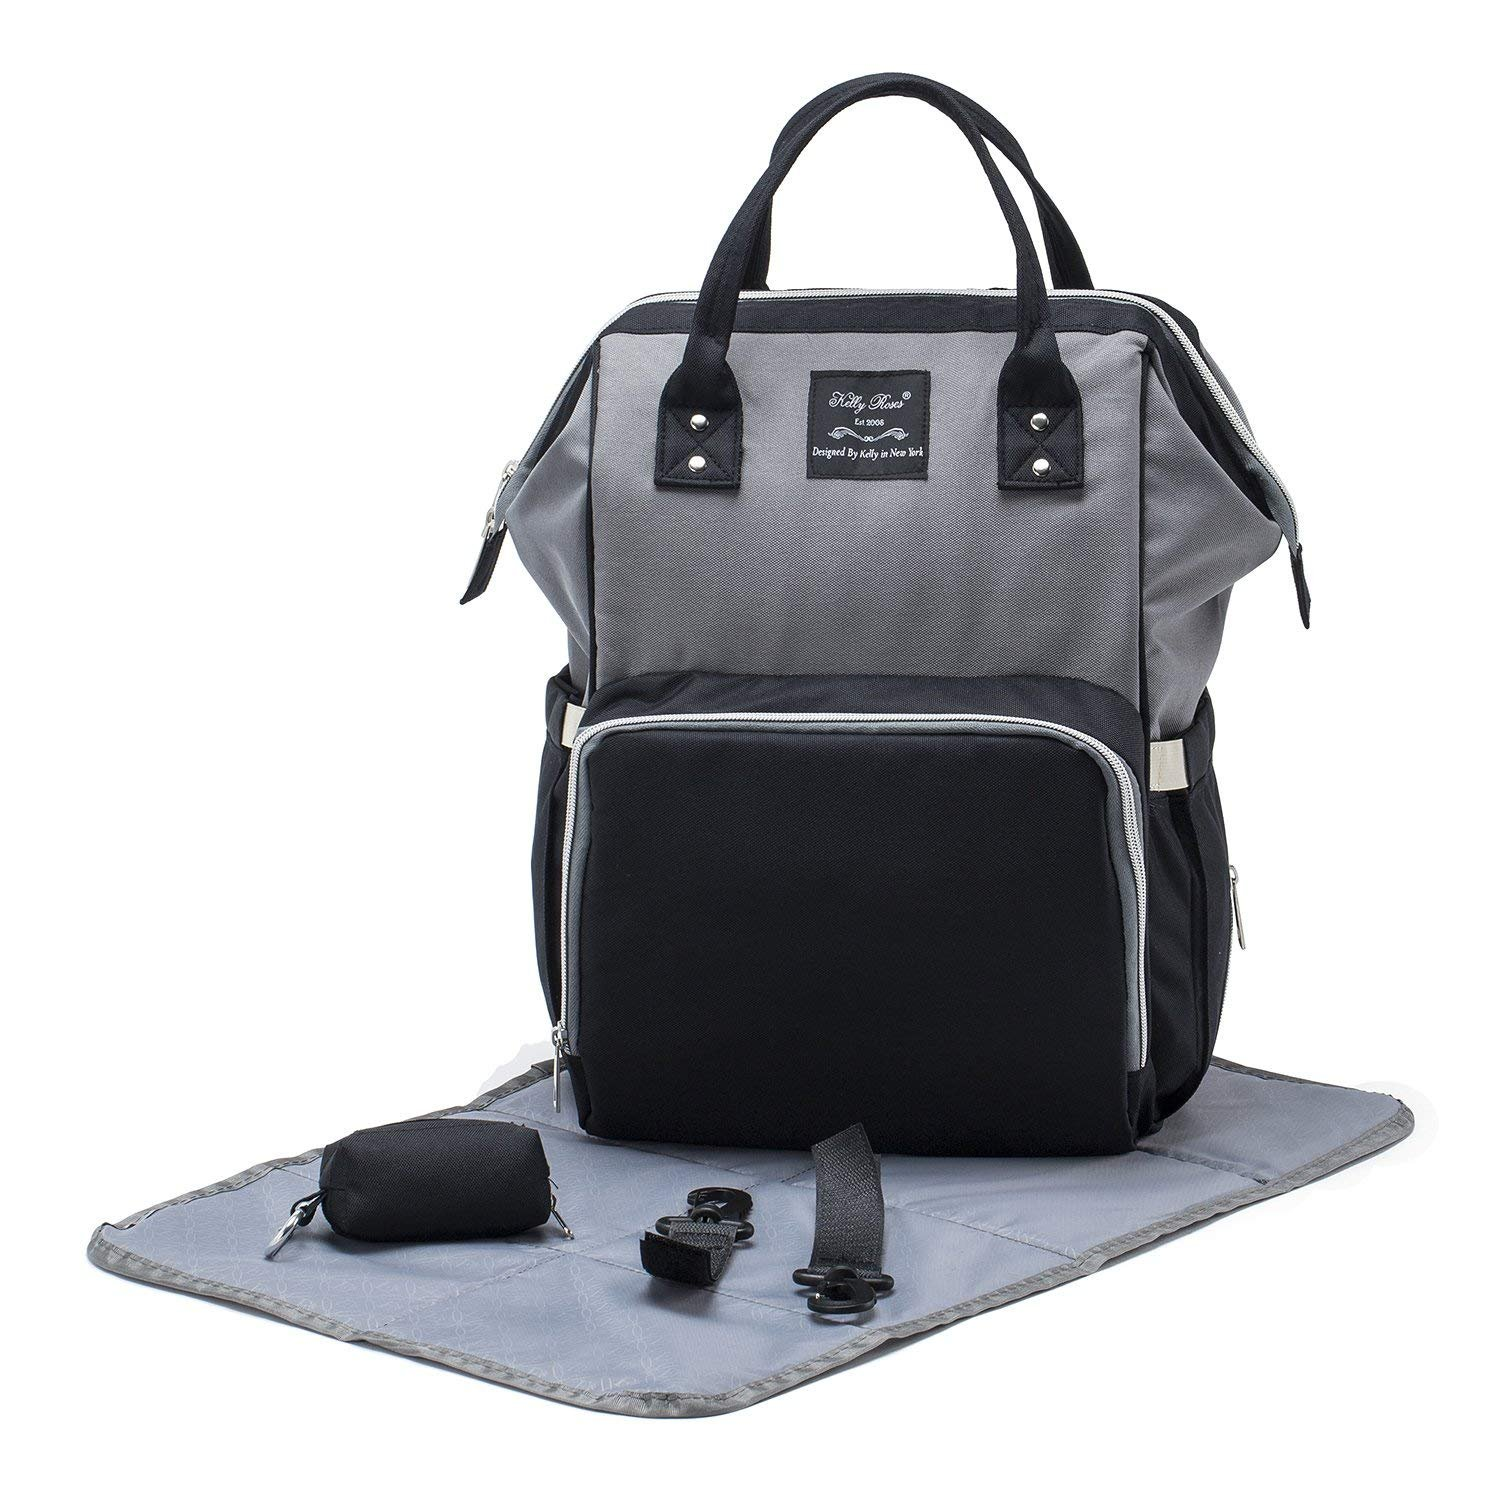 SoHo WideOpen Diaper Backpack Tote 4Pc, Gray Black